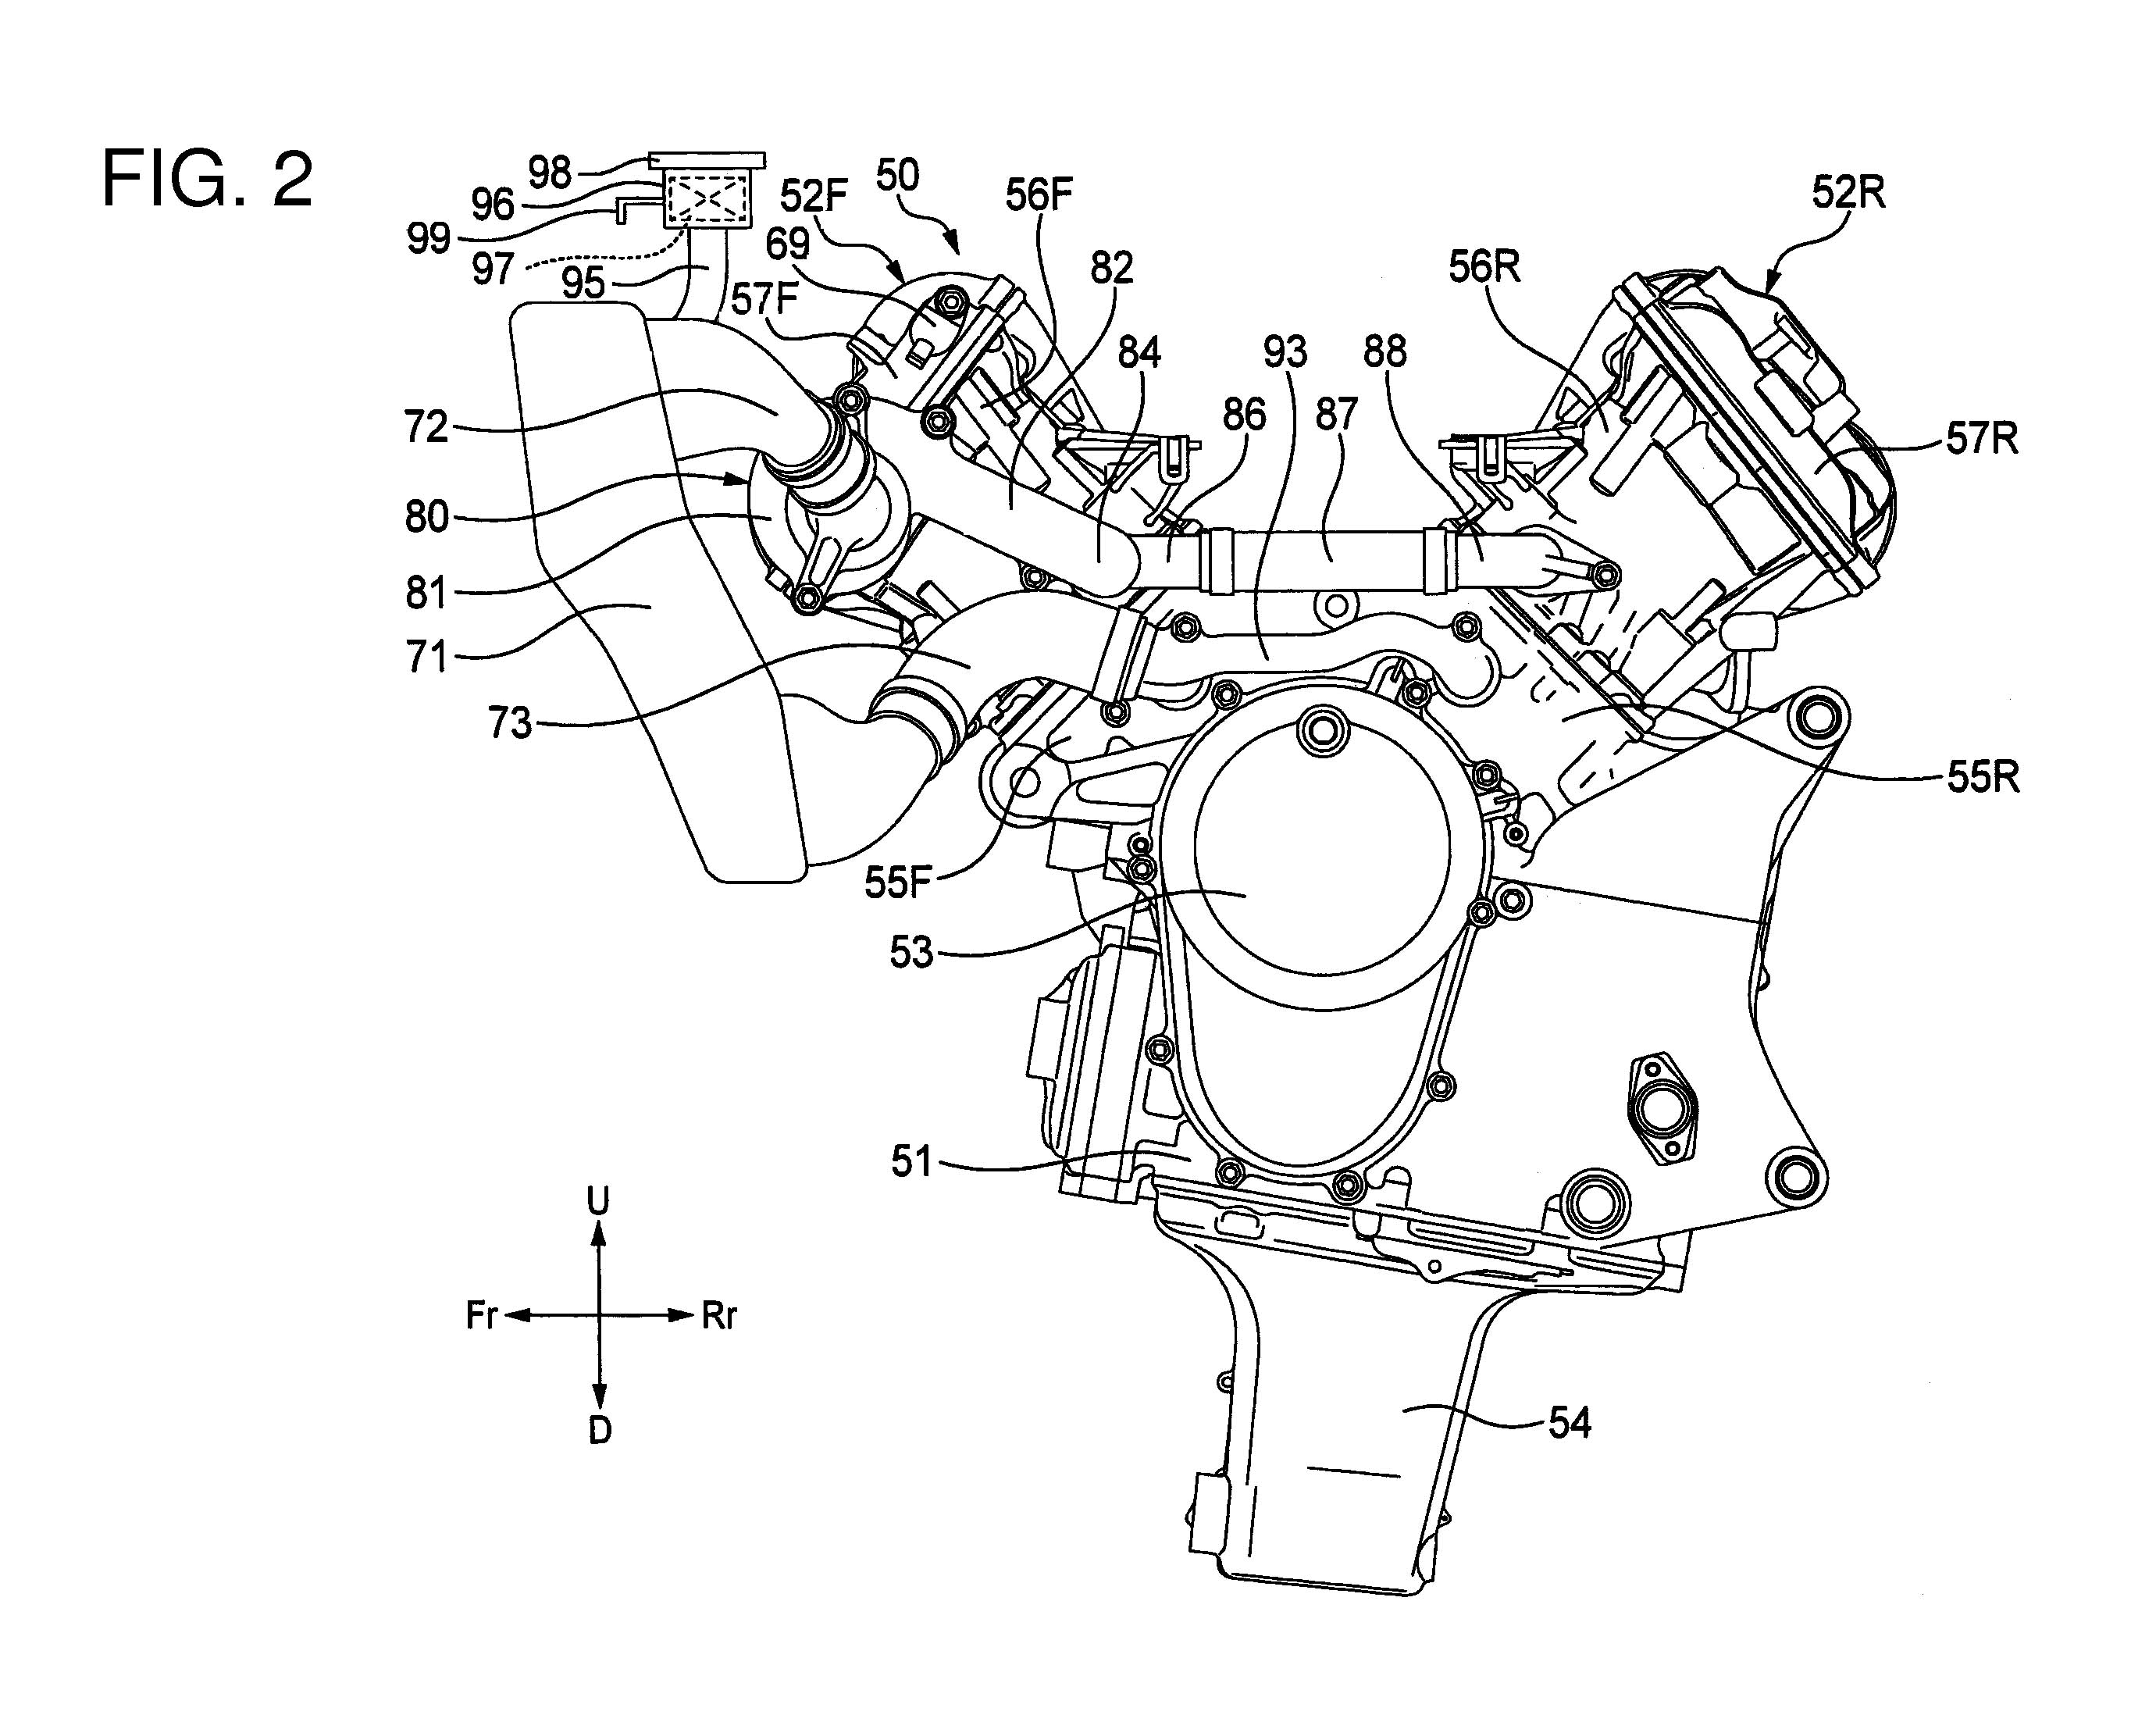 Engine Drawing At Free For Personal Use Blueprint Diagram 2761x2196 Honda V4 Superbike Outed In Patent Photos